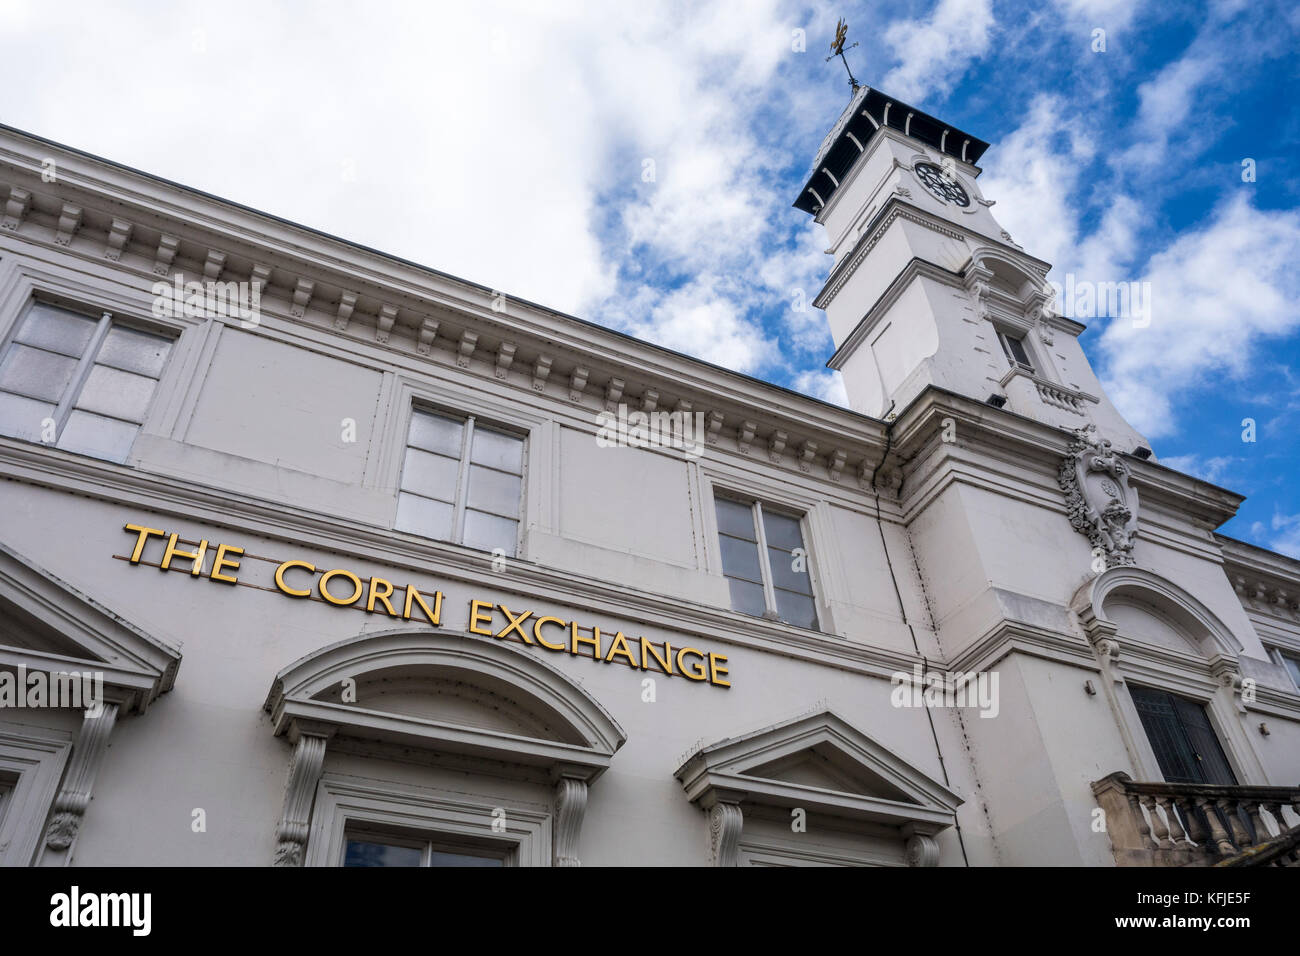 The Corn Exchange building, Leicester, Leicestershire, East Midlands, UK - Stock Image